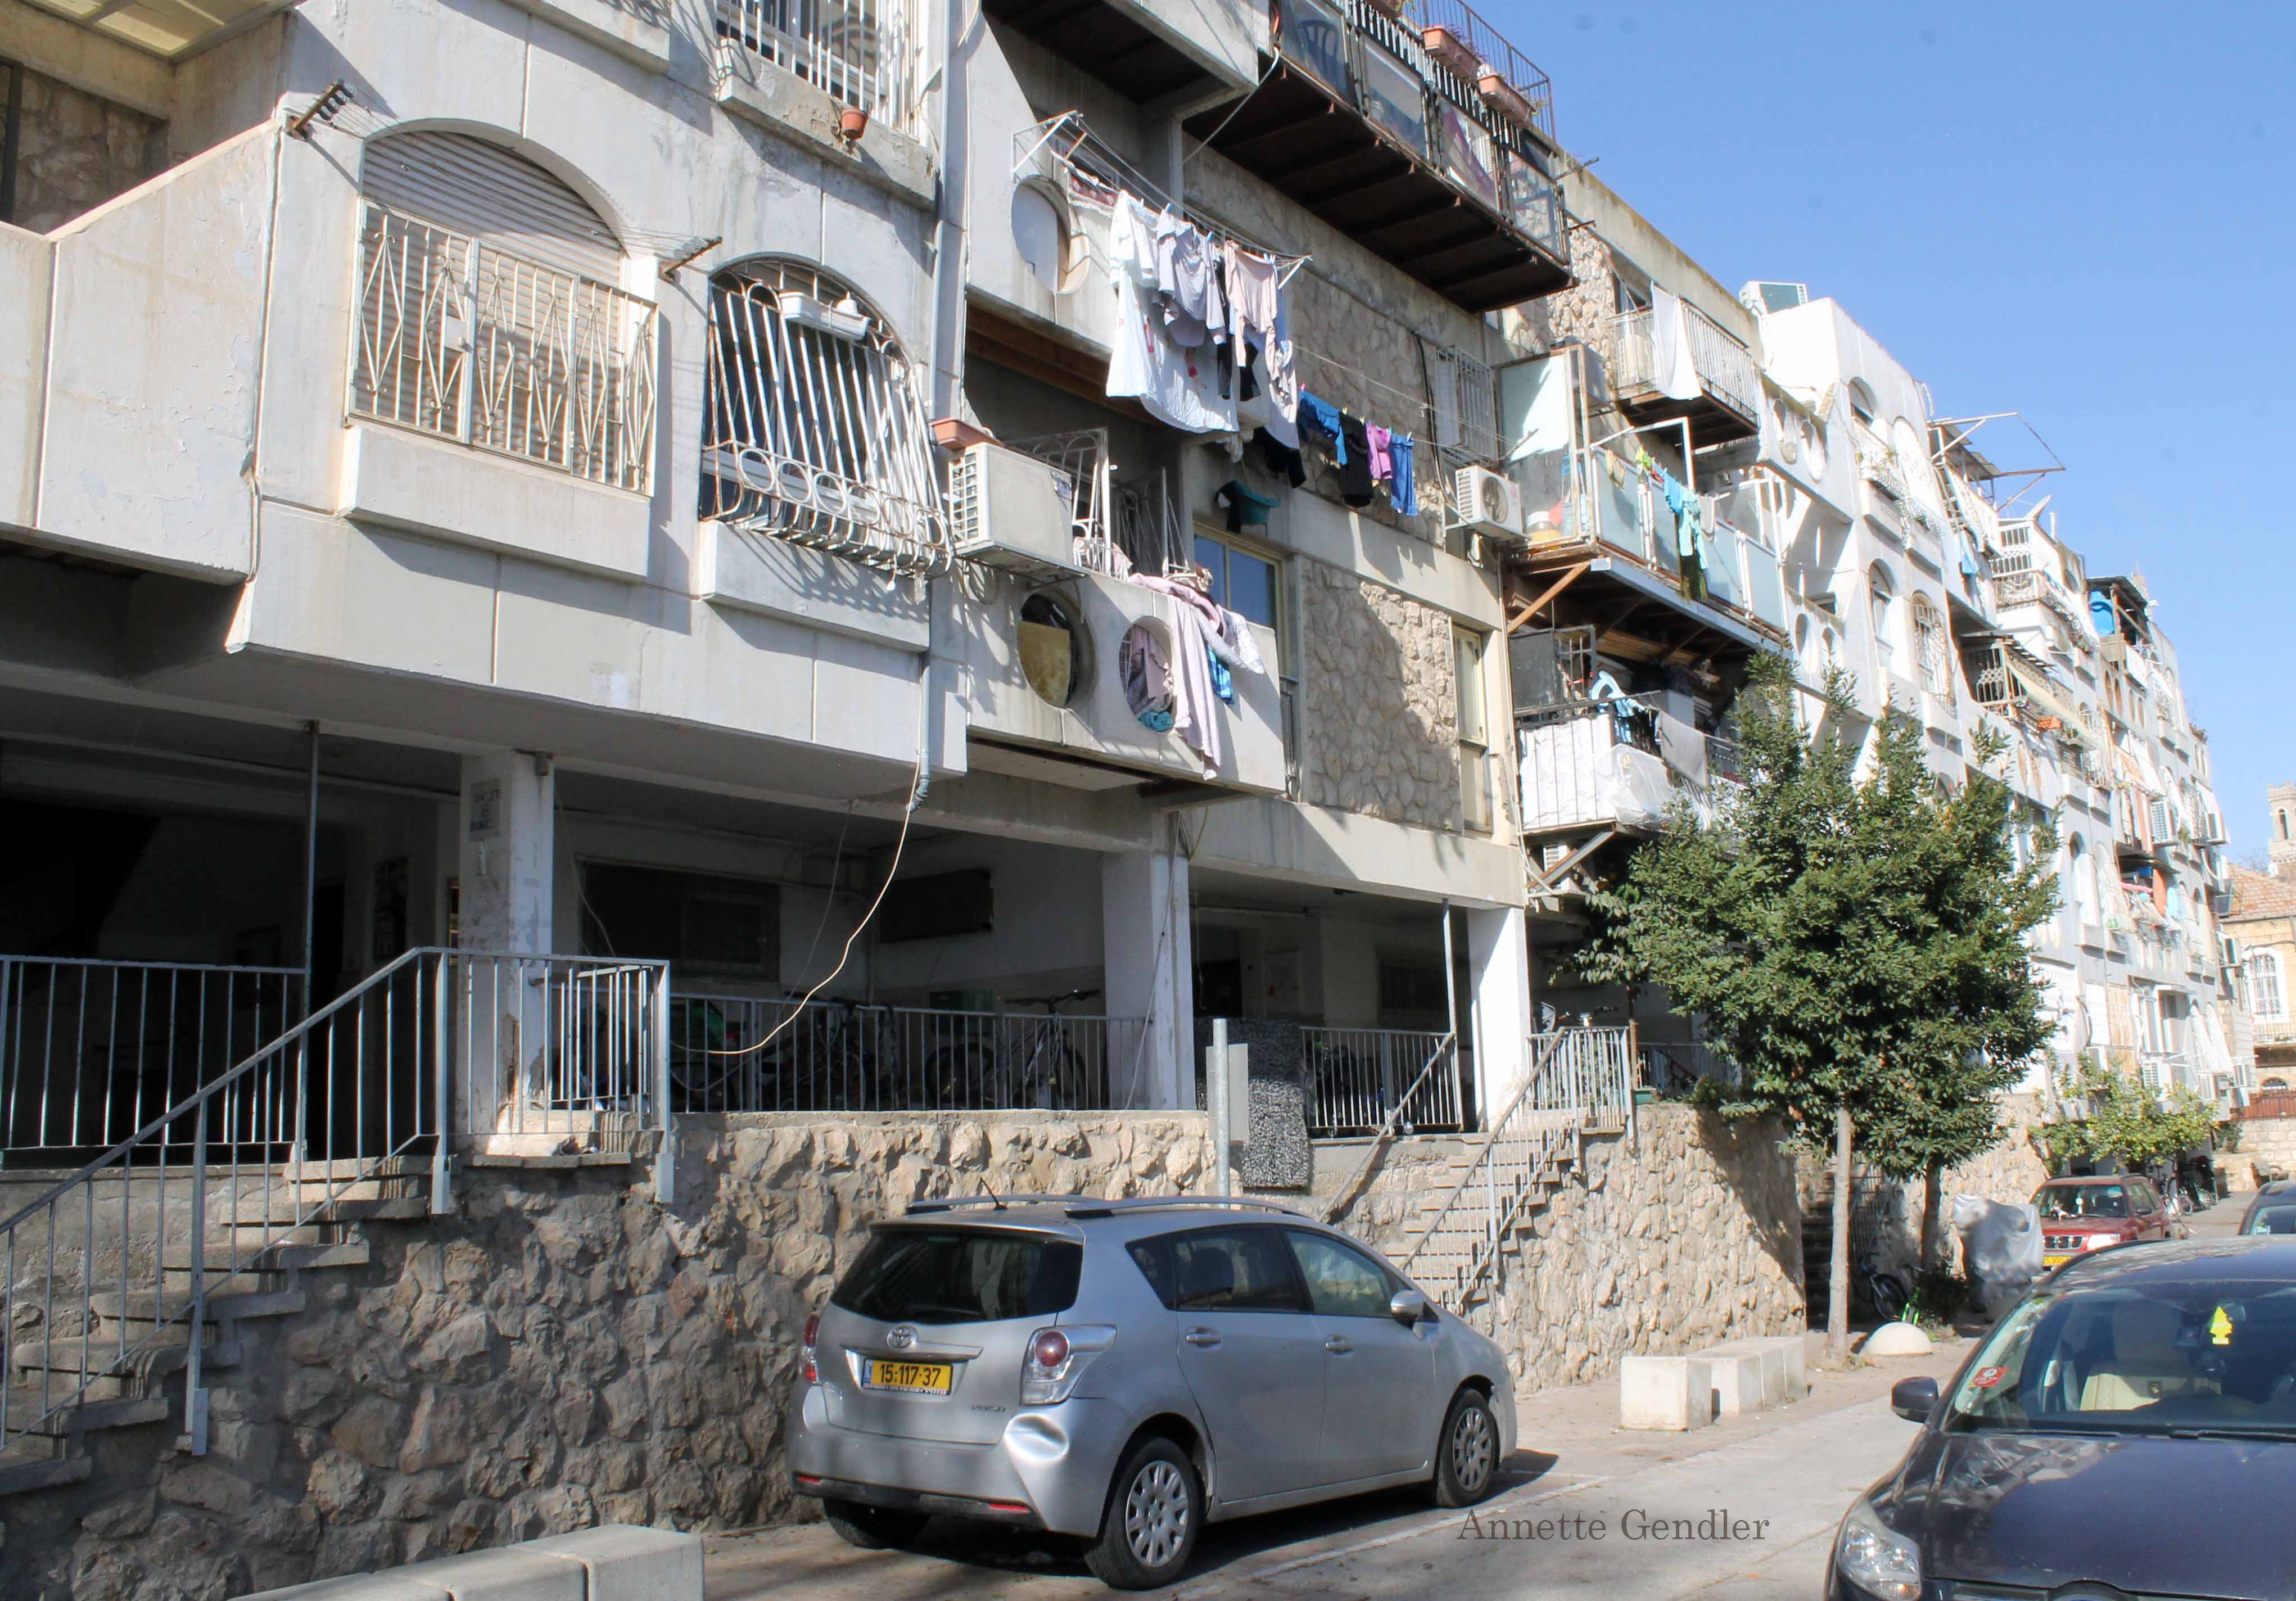 View of 1970s apartment building in Musrara, lots of balconies with laundry hanging outside